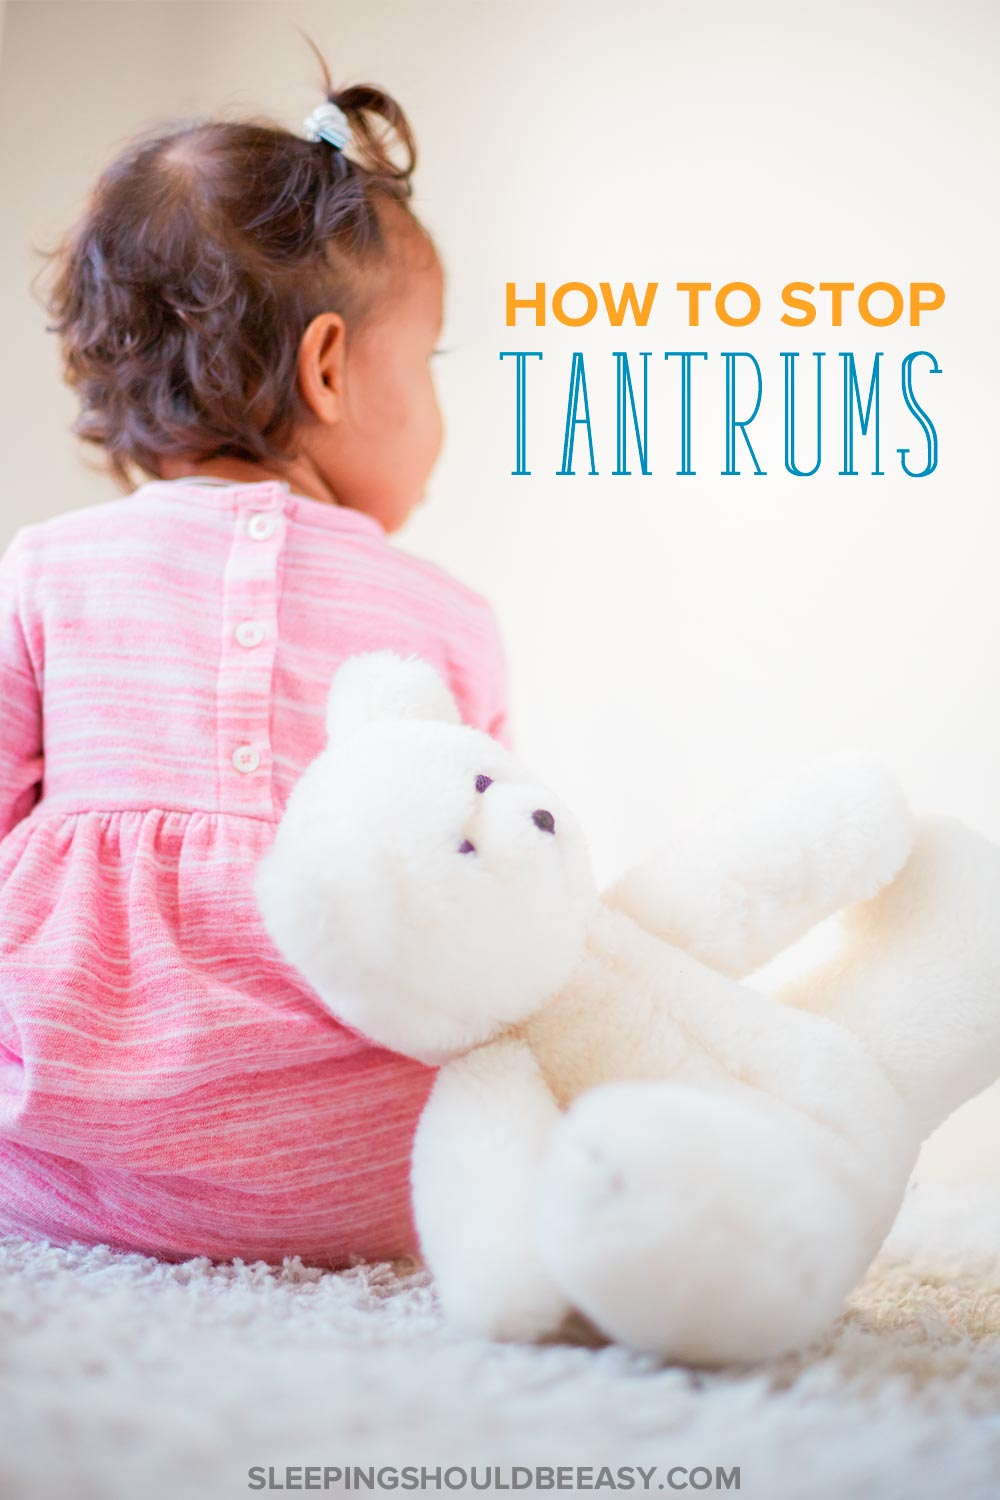 Tantrums are some of the most challenging experiences, for both parents and kids. Discover effective ways to manage toddler temper tantrums, meltdowns and outbursts.